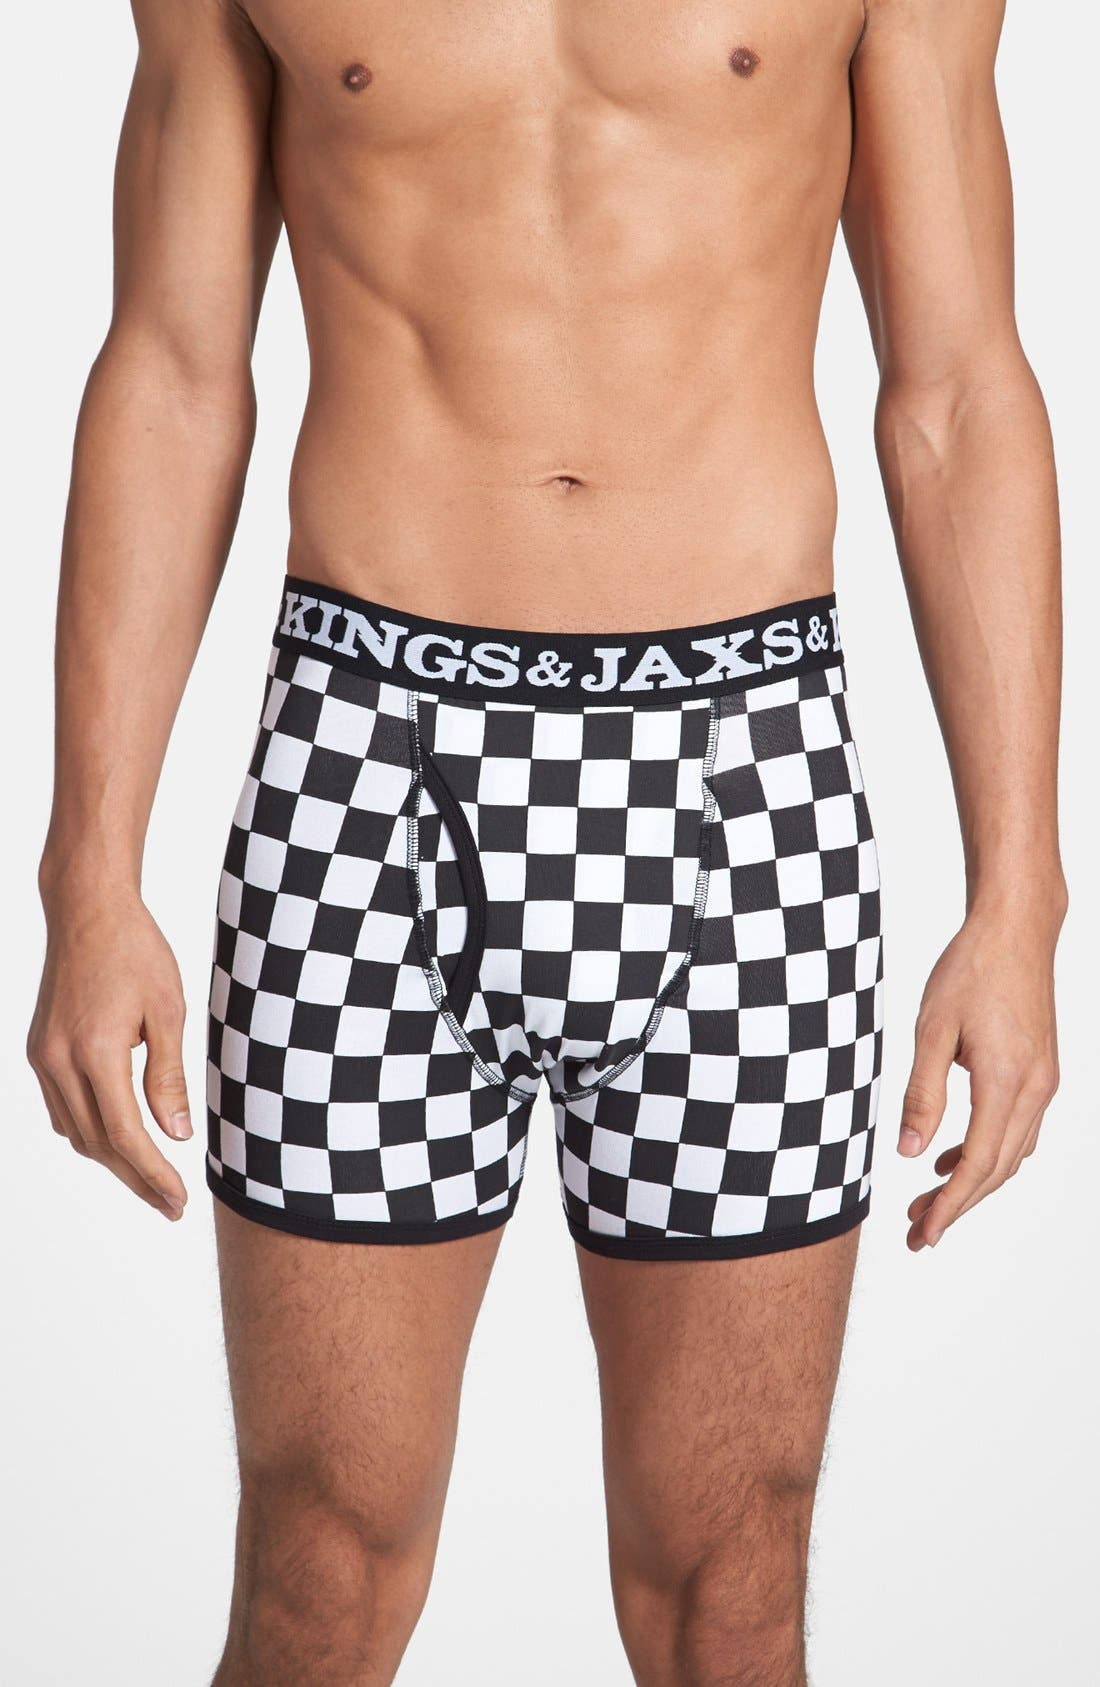 Alternate Image 1 Selected - KINGS & JAXS Checked Boxer Briefs